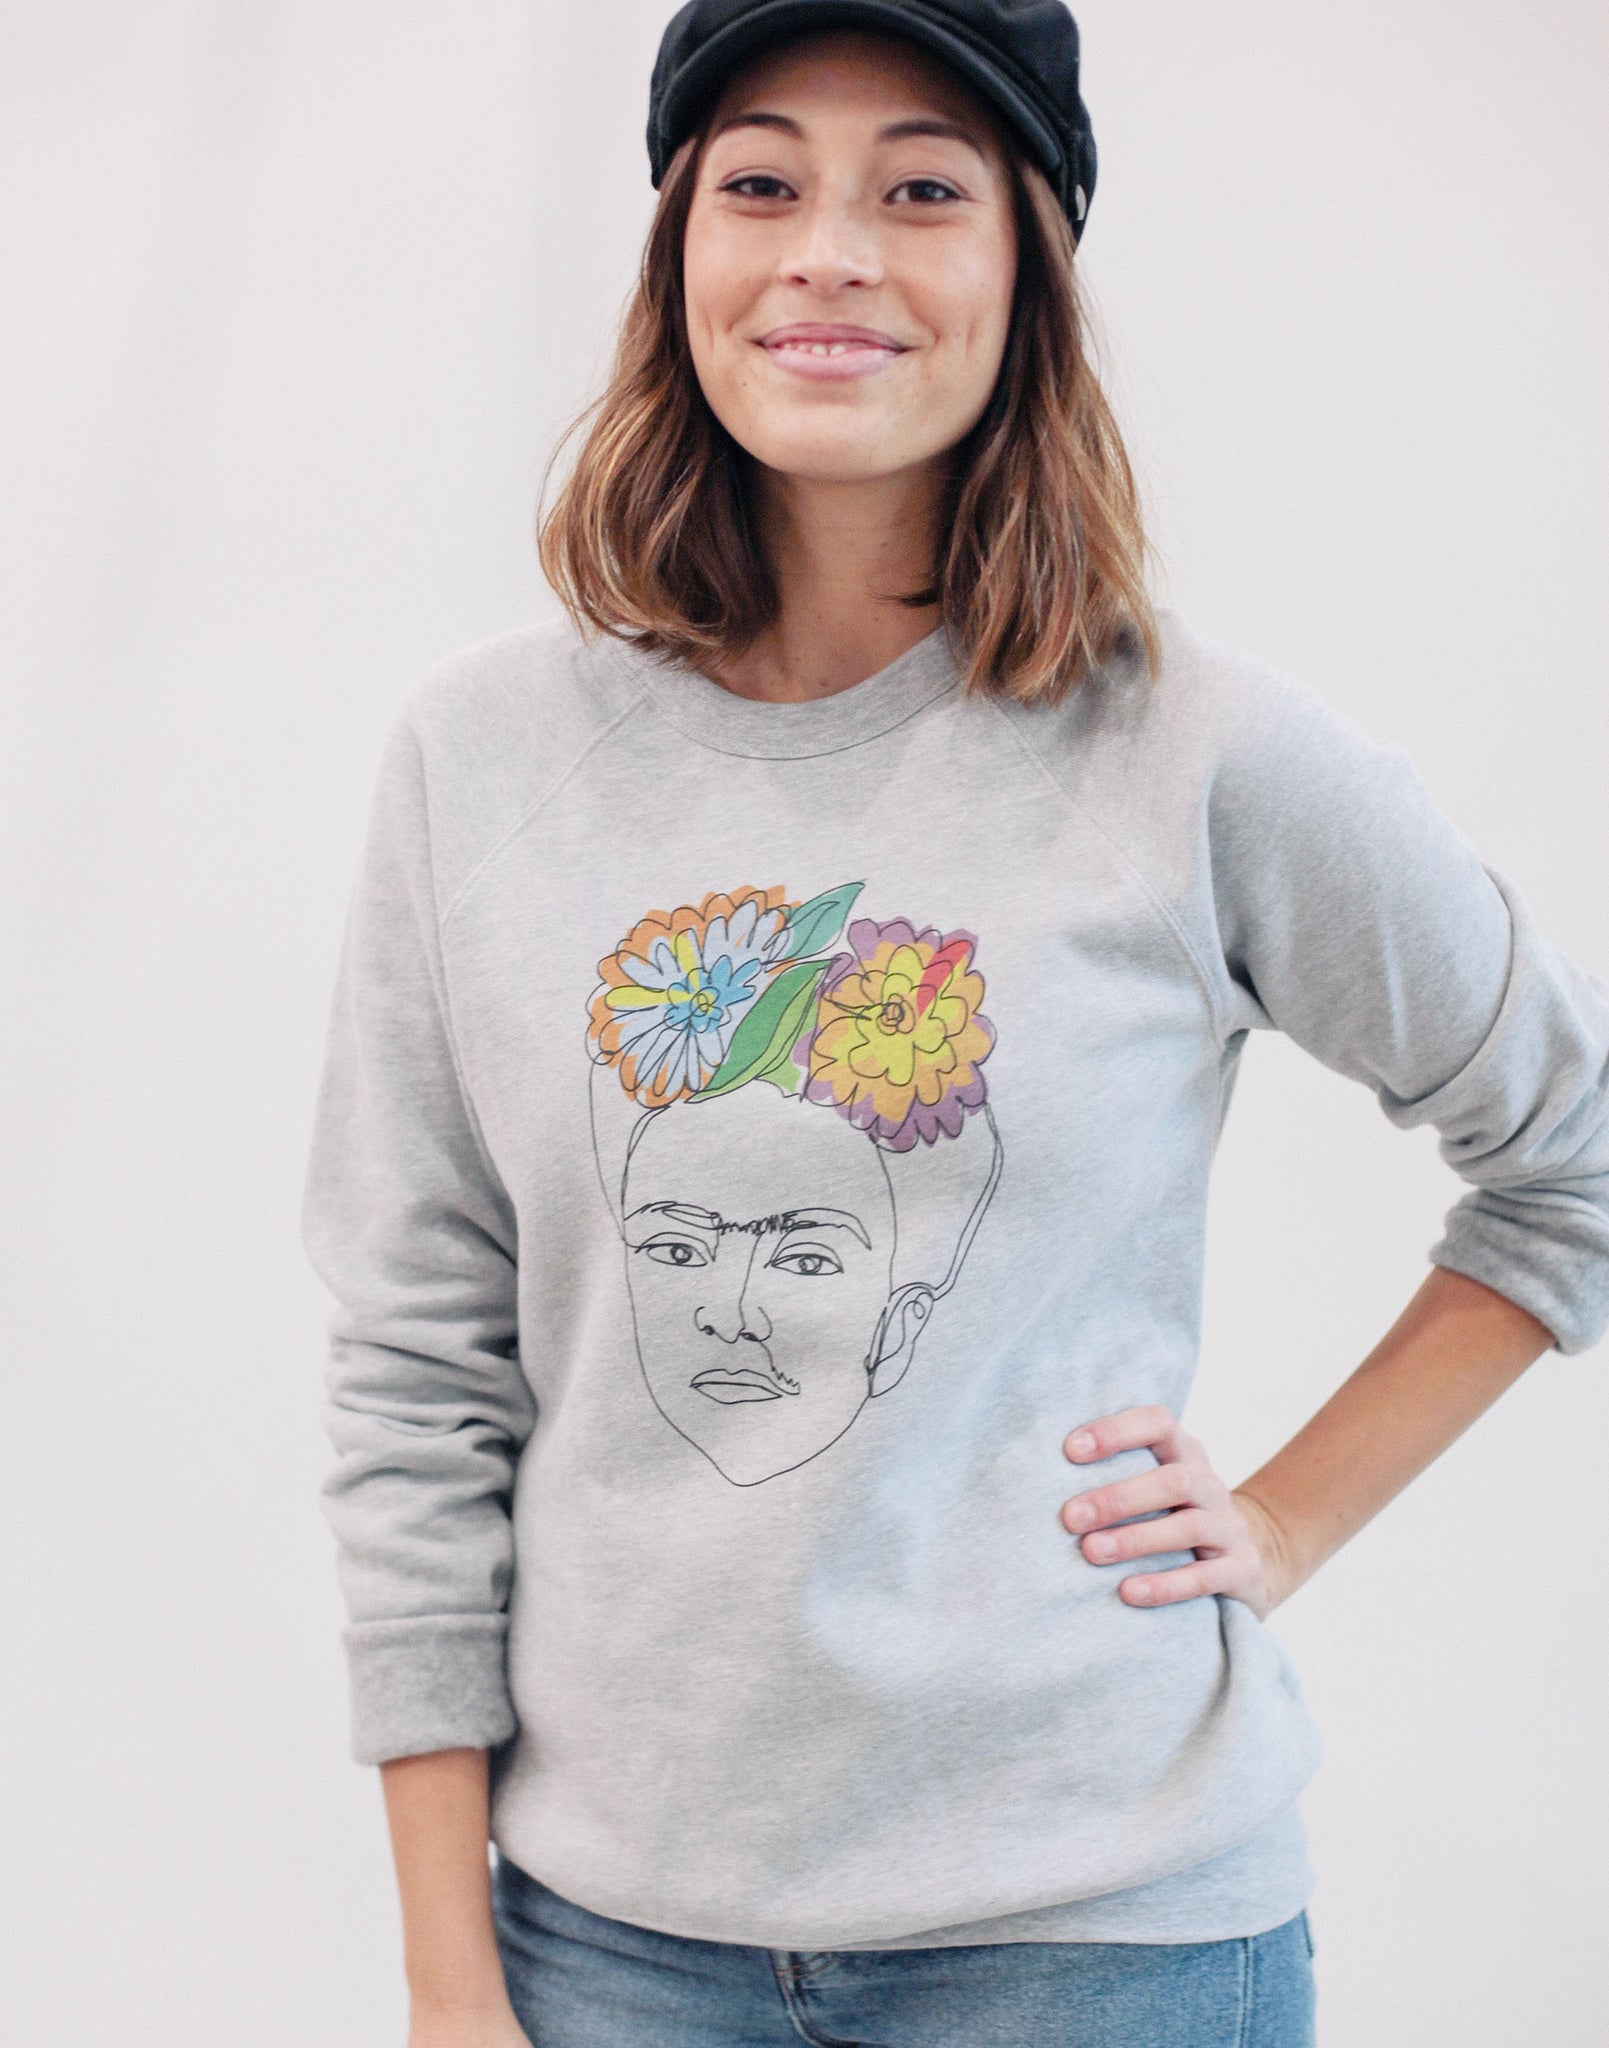 Viva La Frida Sweater